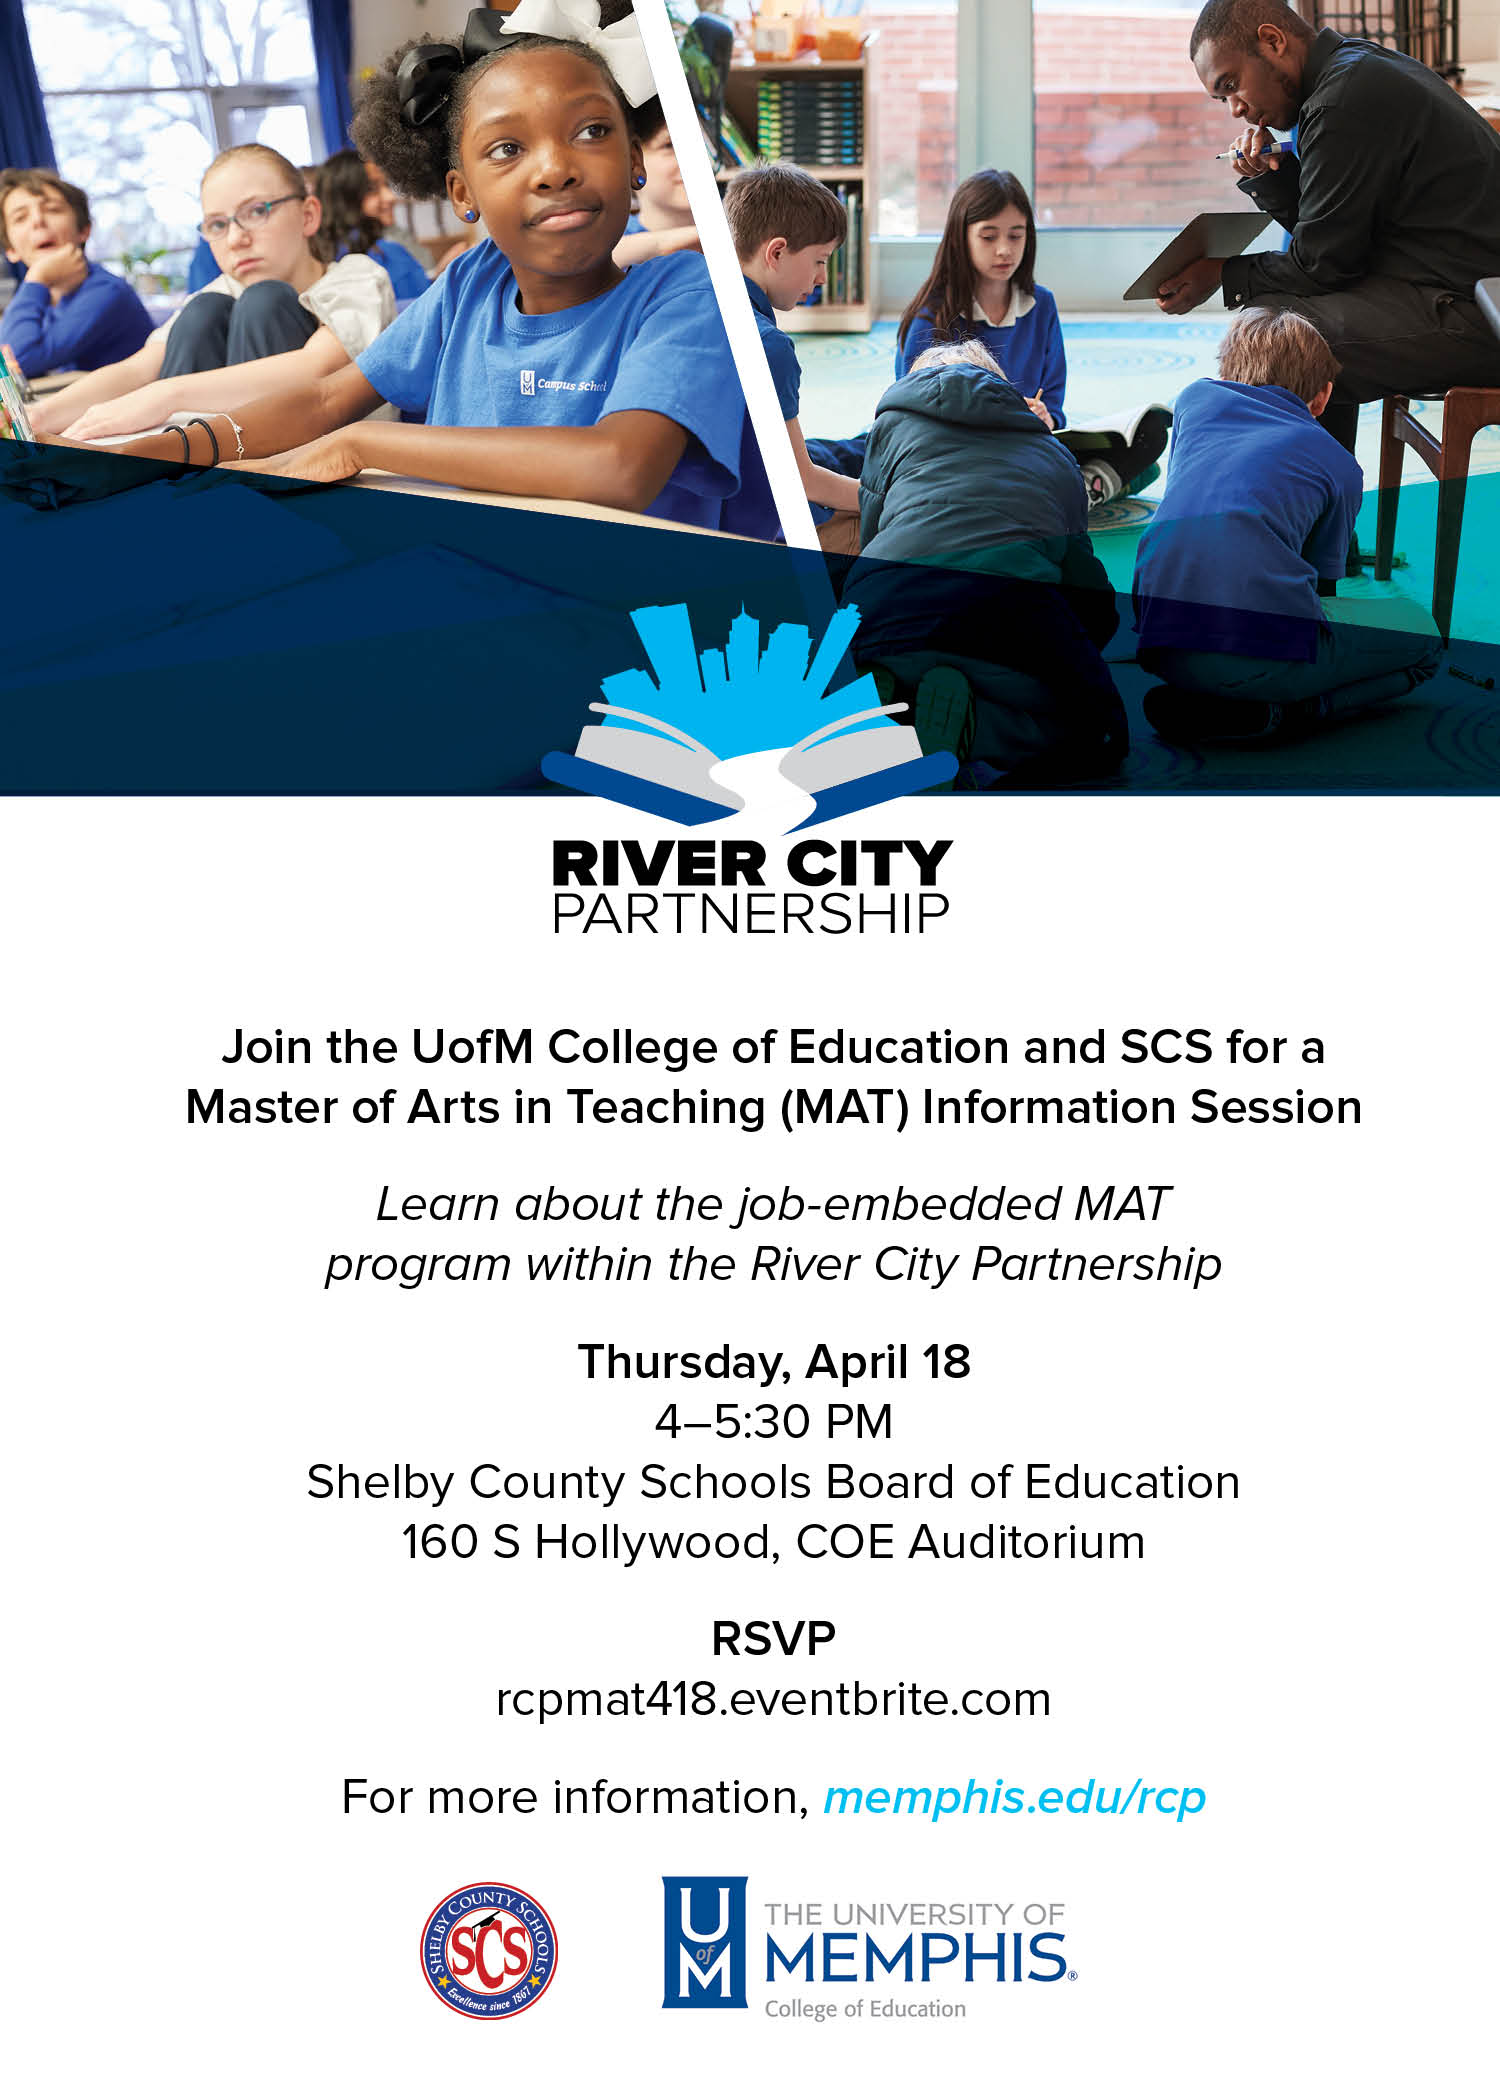 RCP MAT Information Session flyer